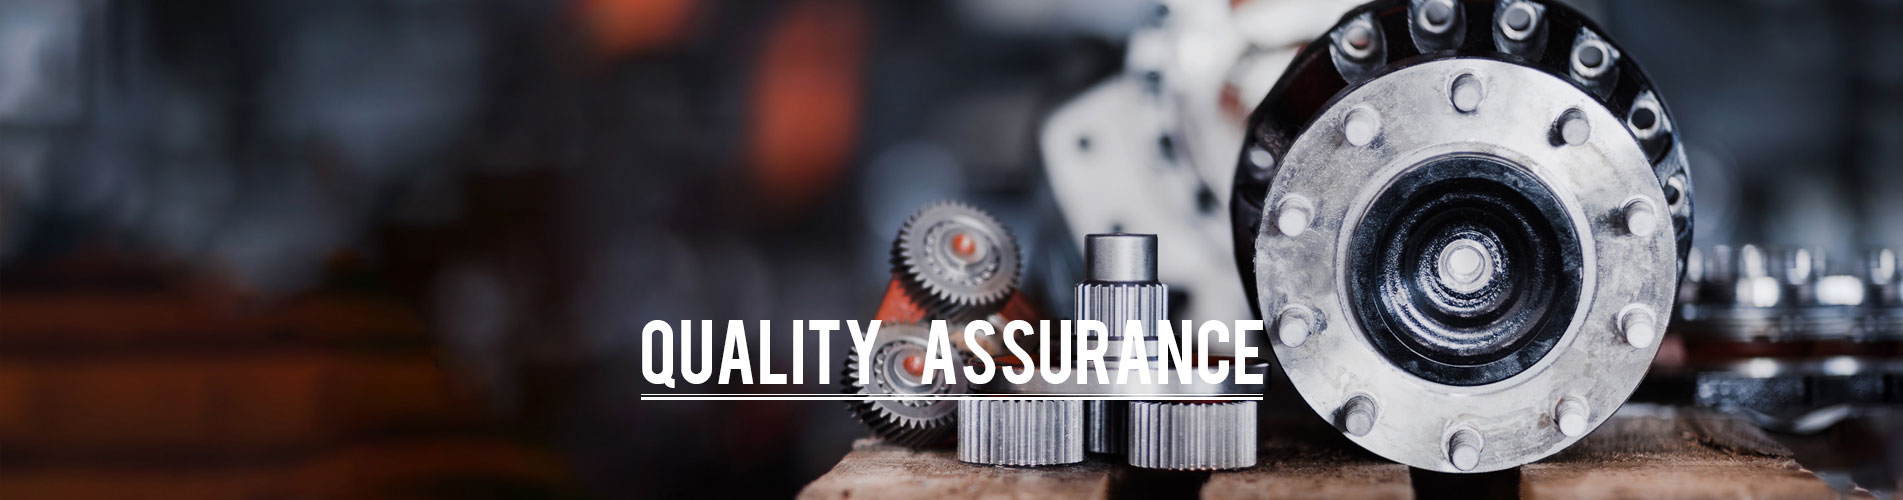 quality assurance banner 2